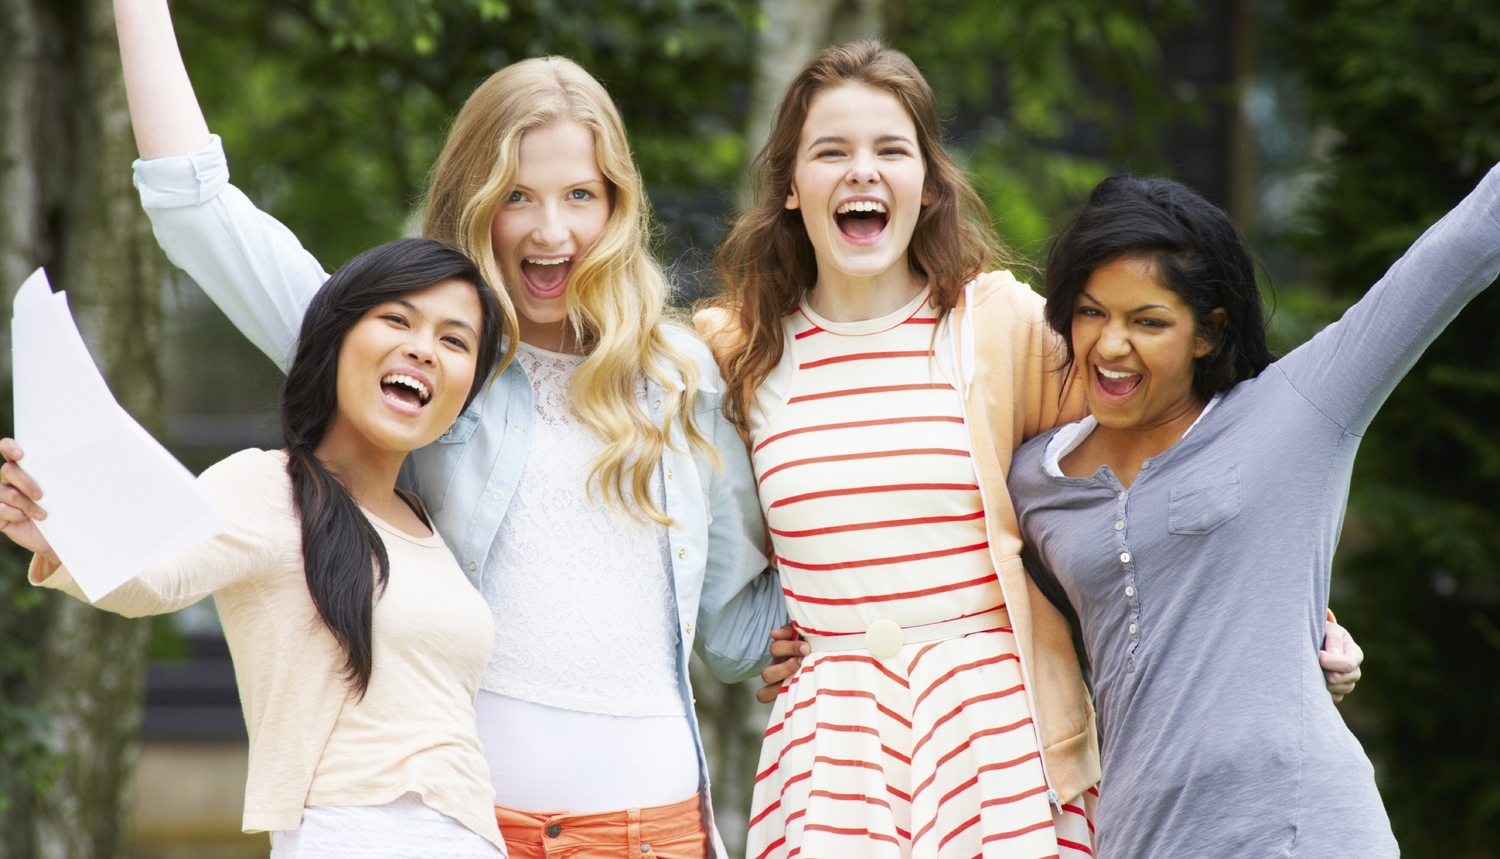 group-therapy-ideas-for-teen-girls